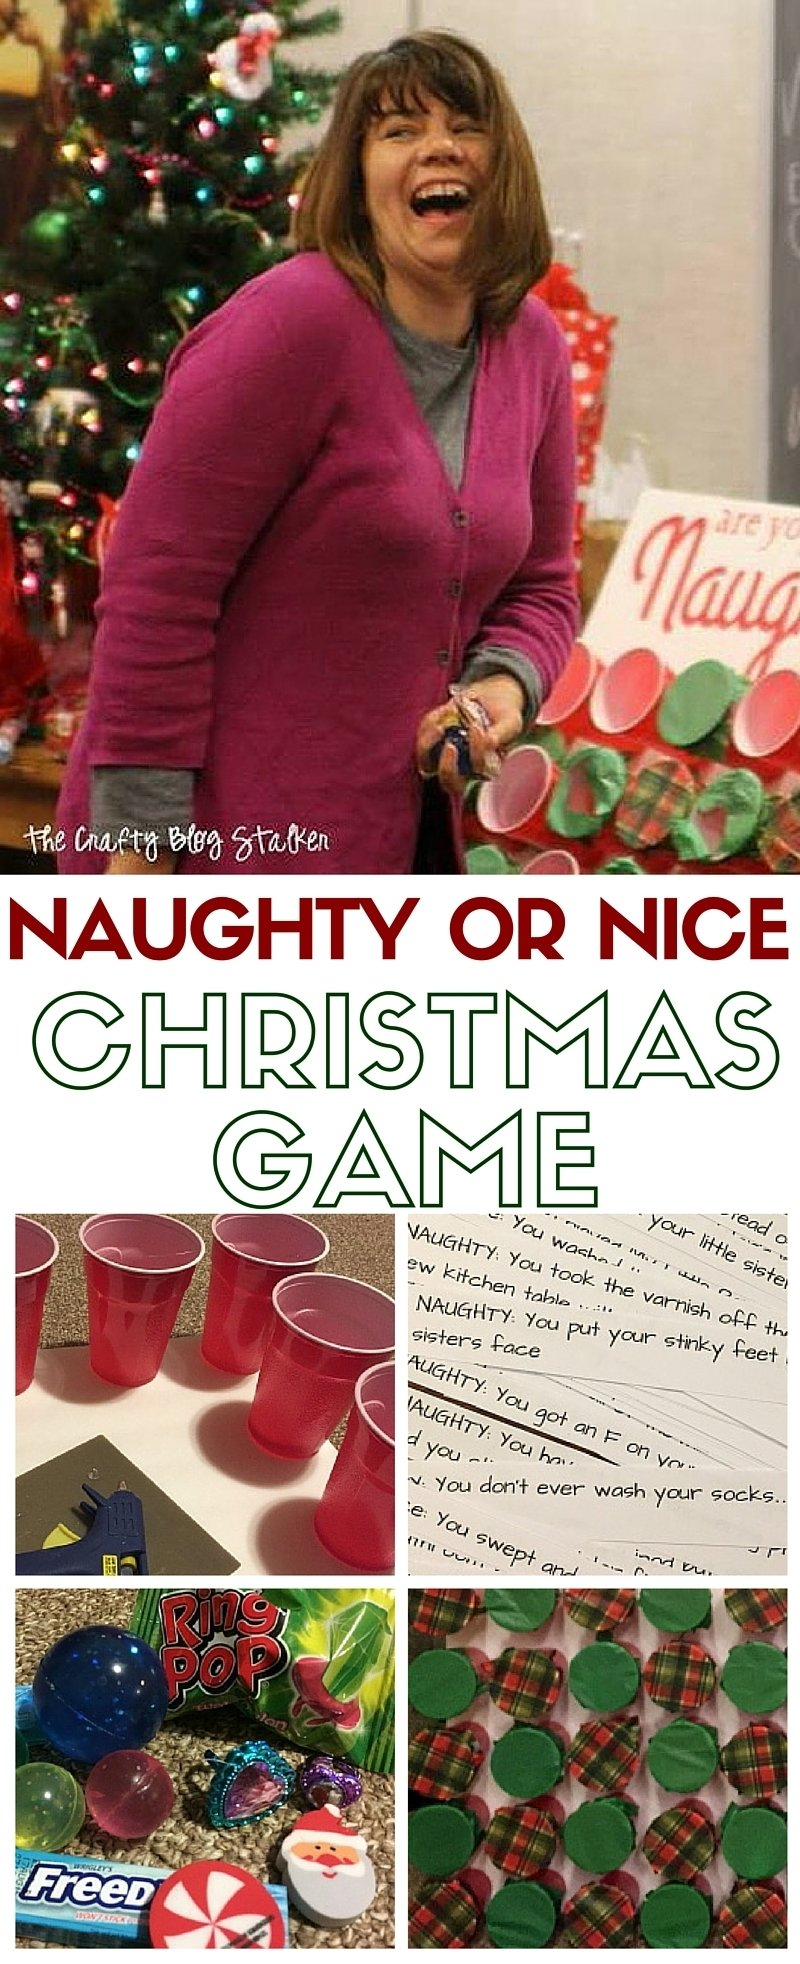 10 Great Naughty Or Nice Christmas Party Ideas 20 party games for the christmas holidays the crafty blog stalker 2021